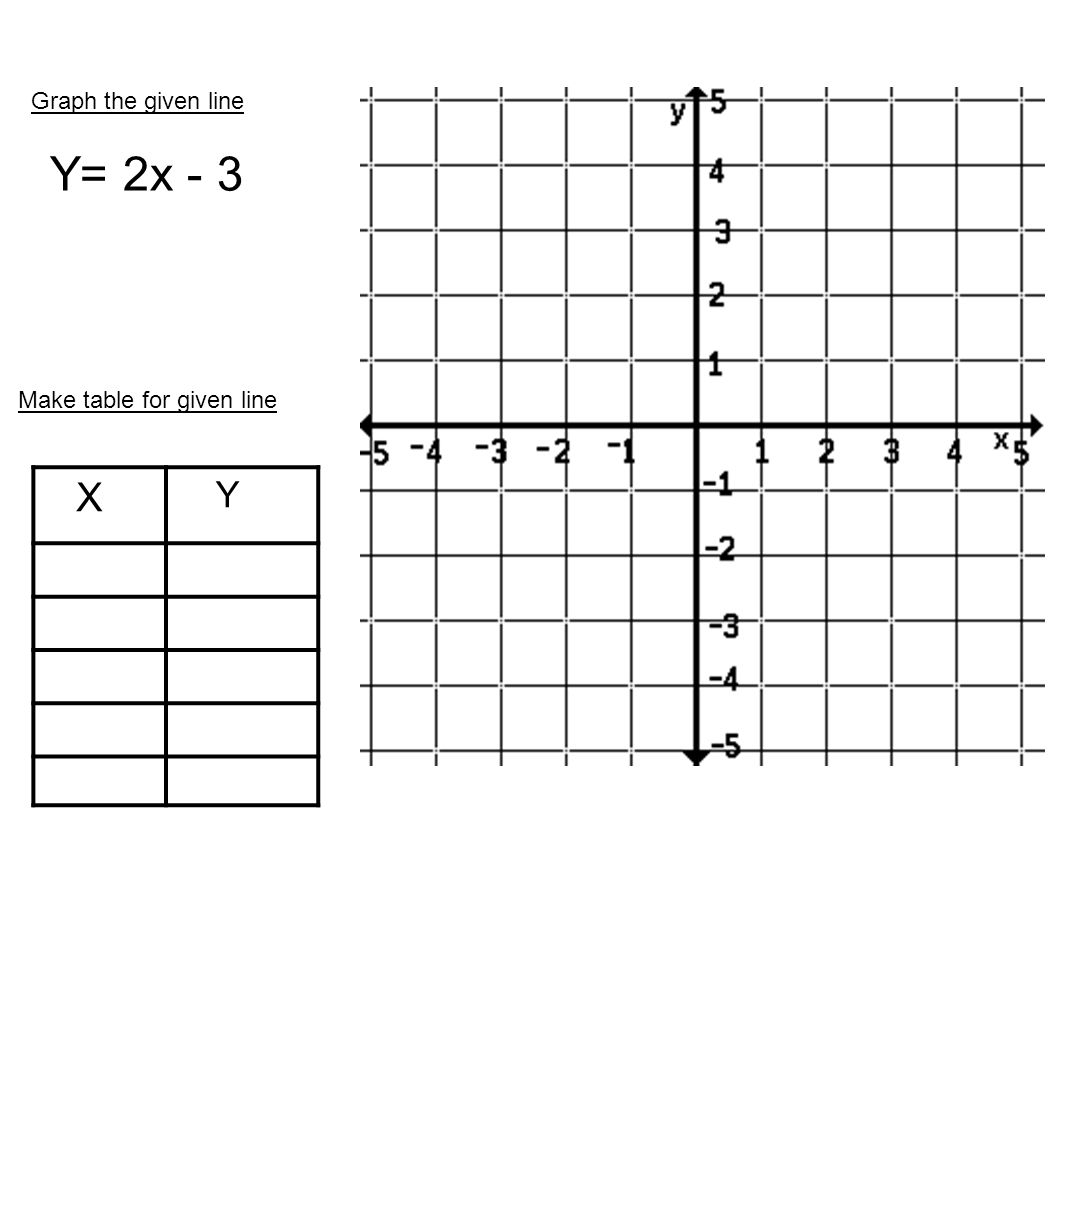 Graph the given line Y= 2x - 3 Make table for given line X Y